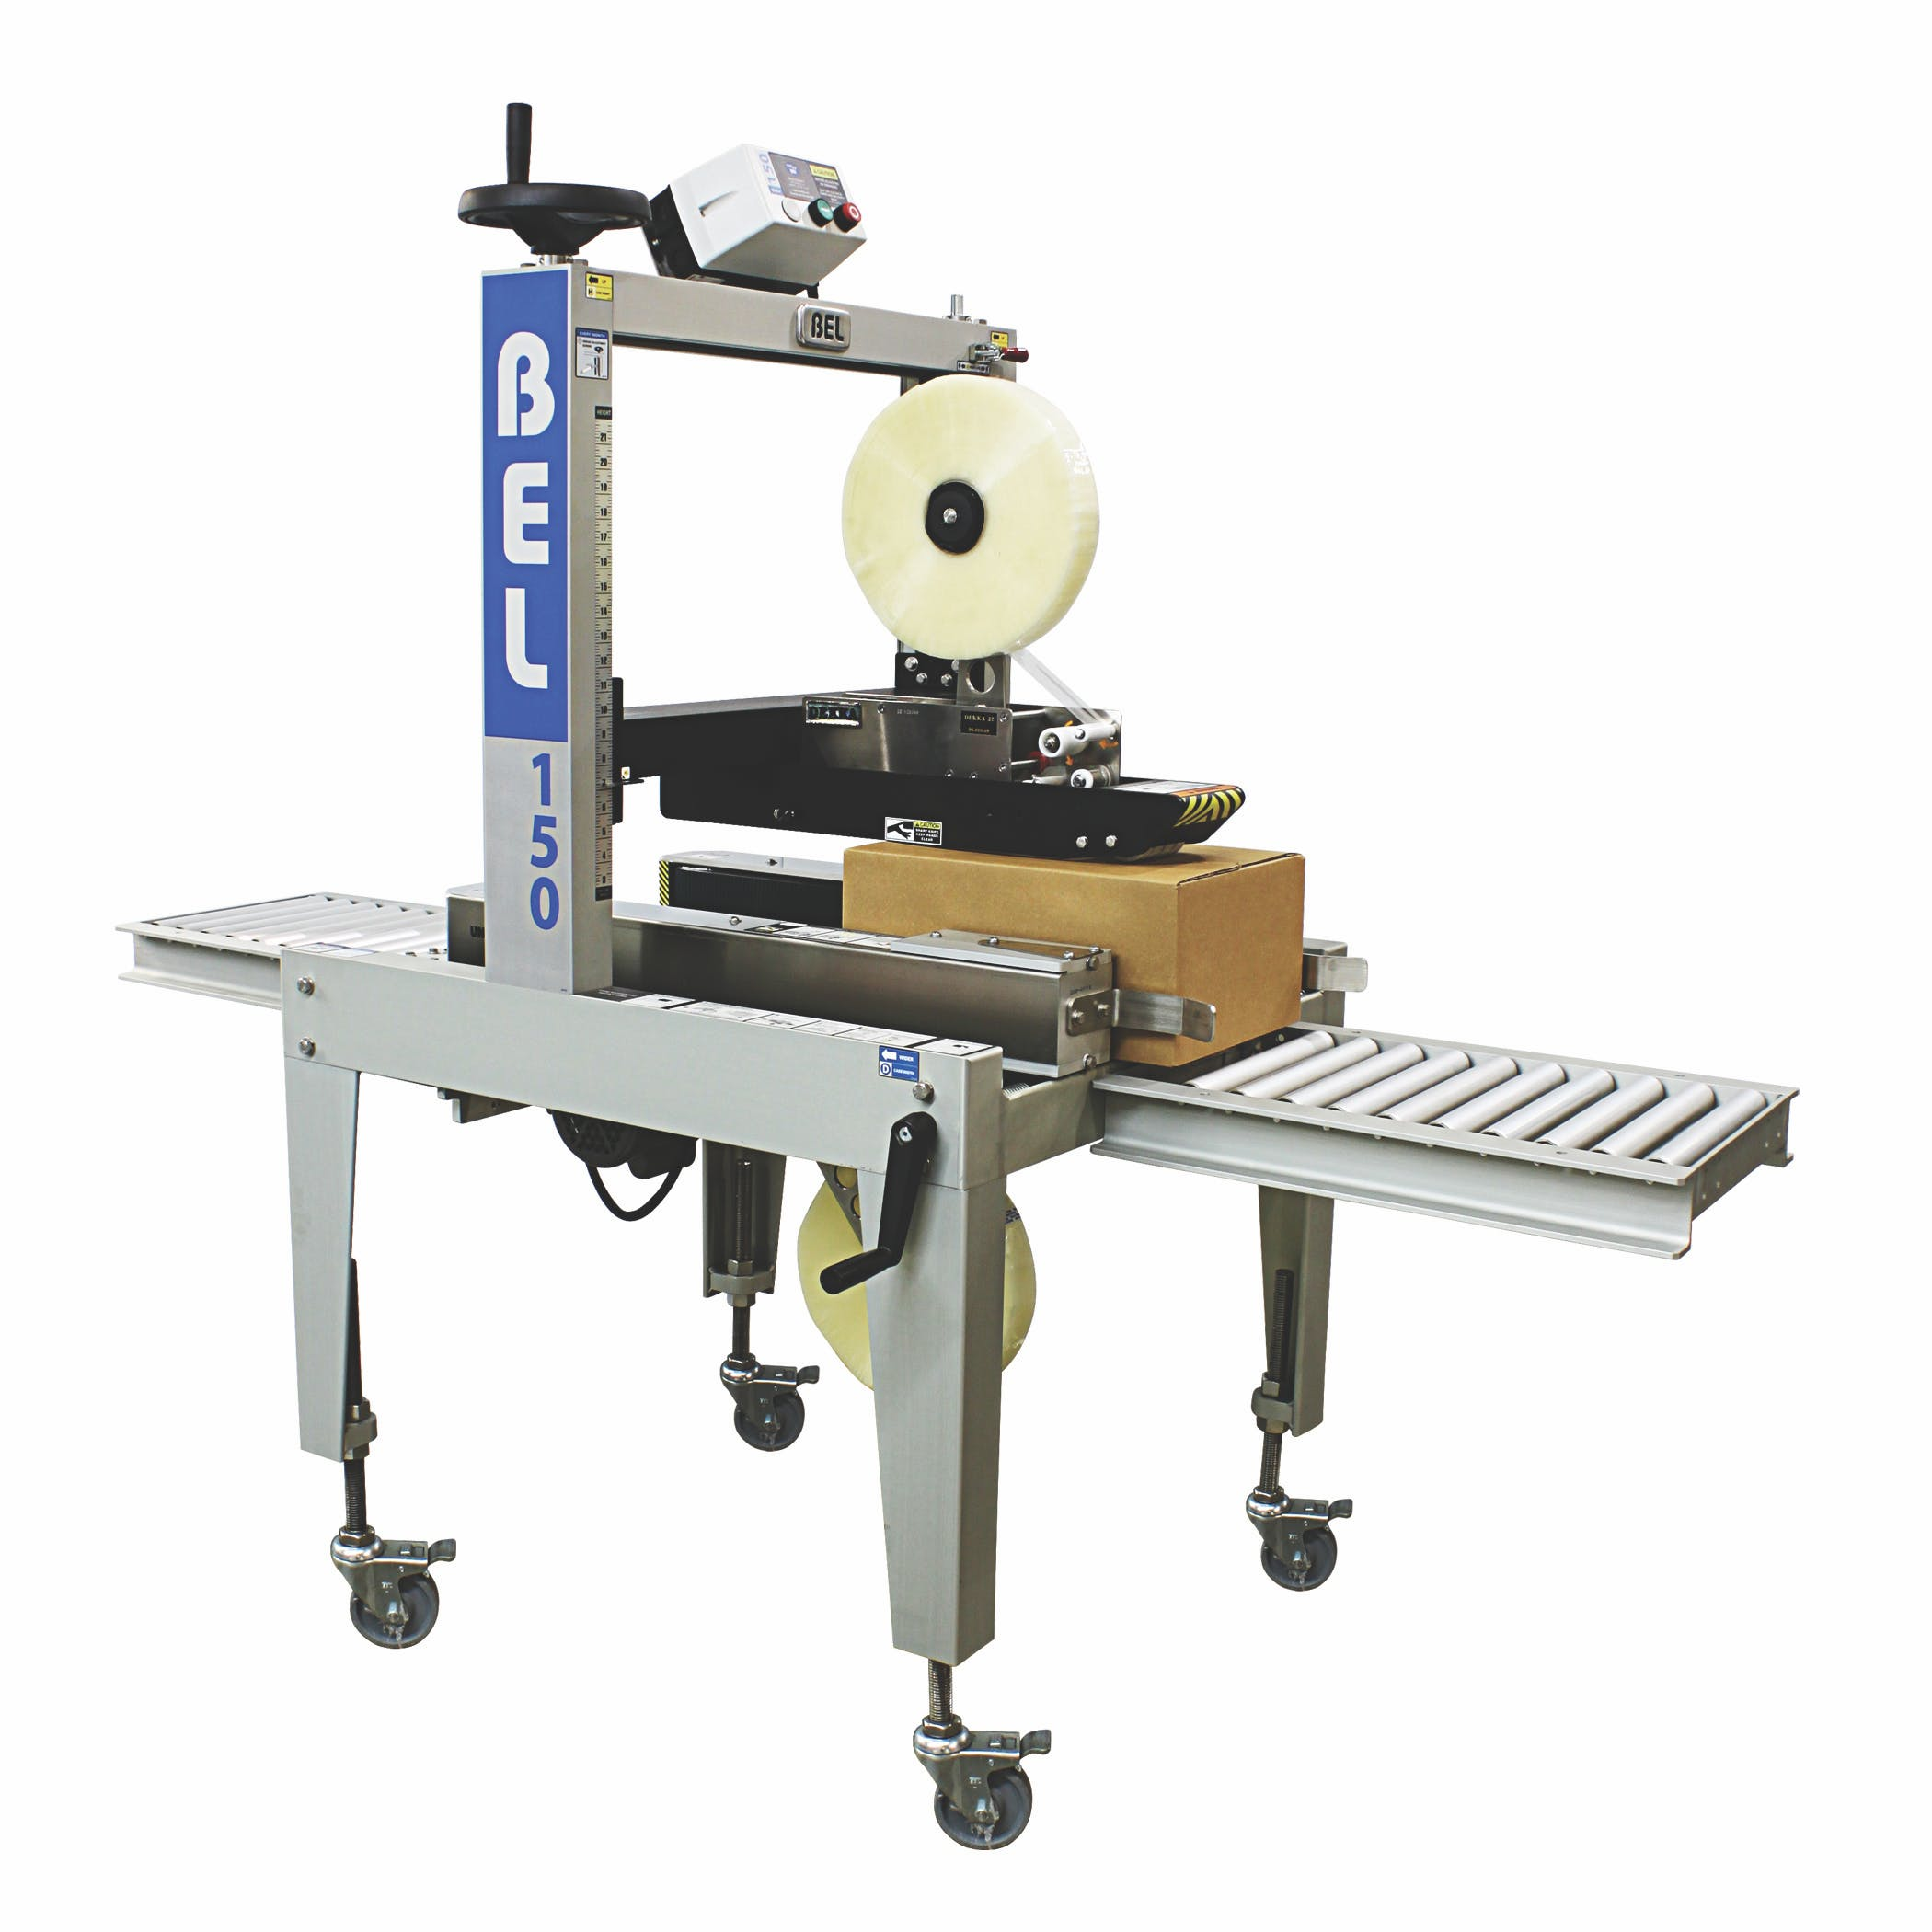 Belcor Case Sealer - BEL-150, Semi-Automatic Case sealer/taper sold by Package Devices LLC